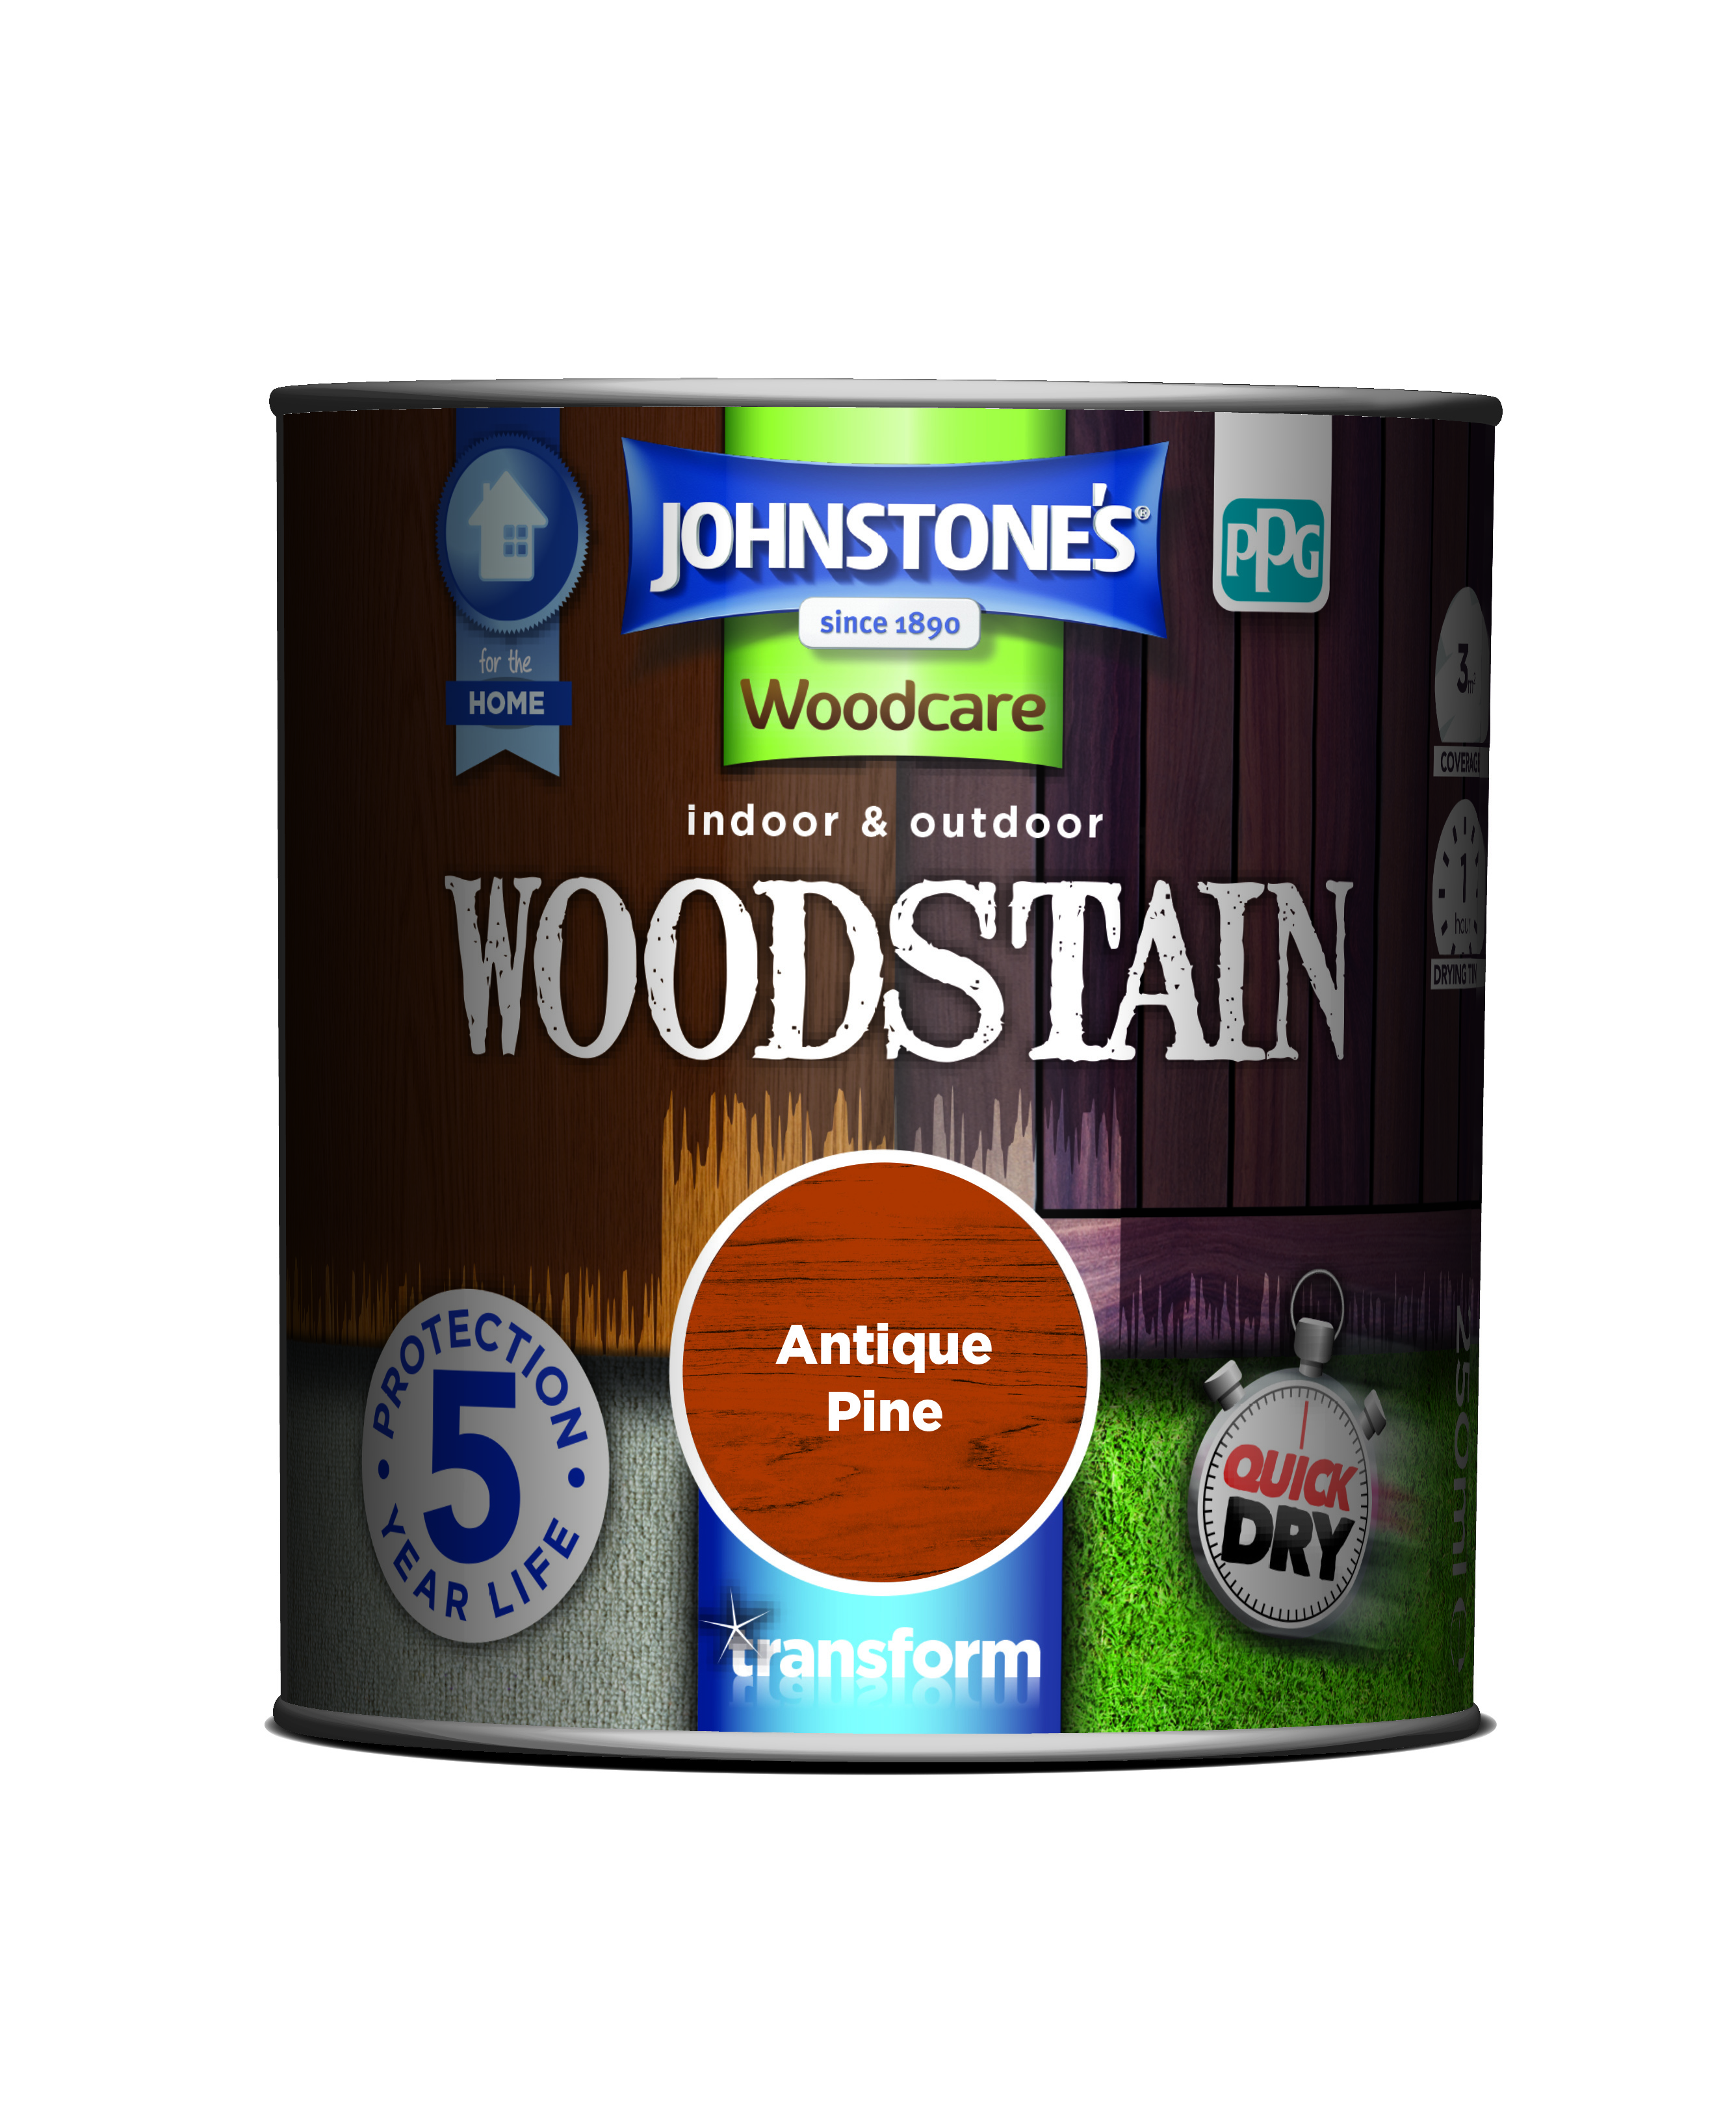 2.5ltr - Johnstone's Woodcare Woodstain Antique Pine